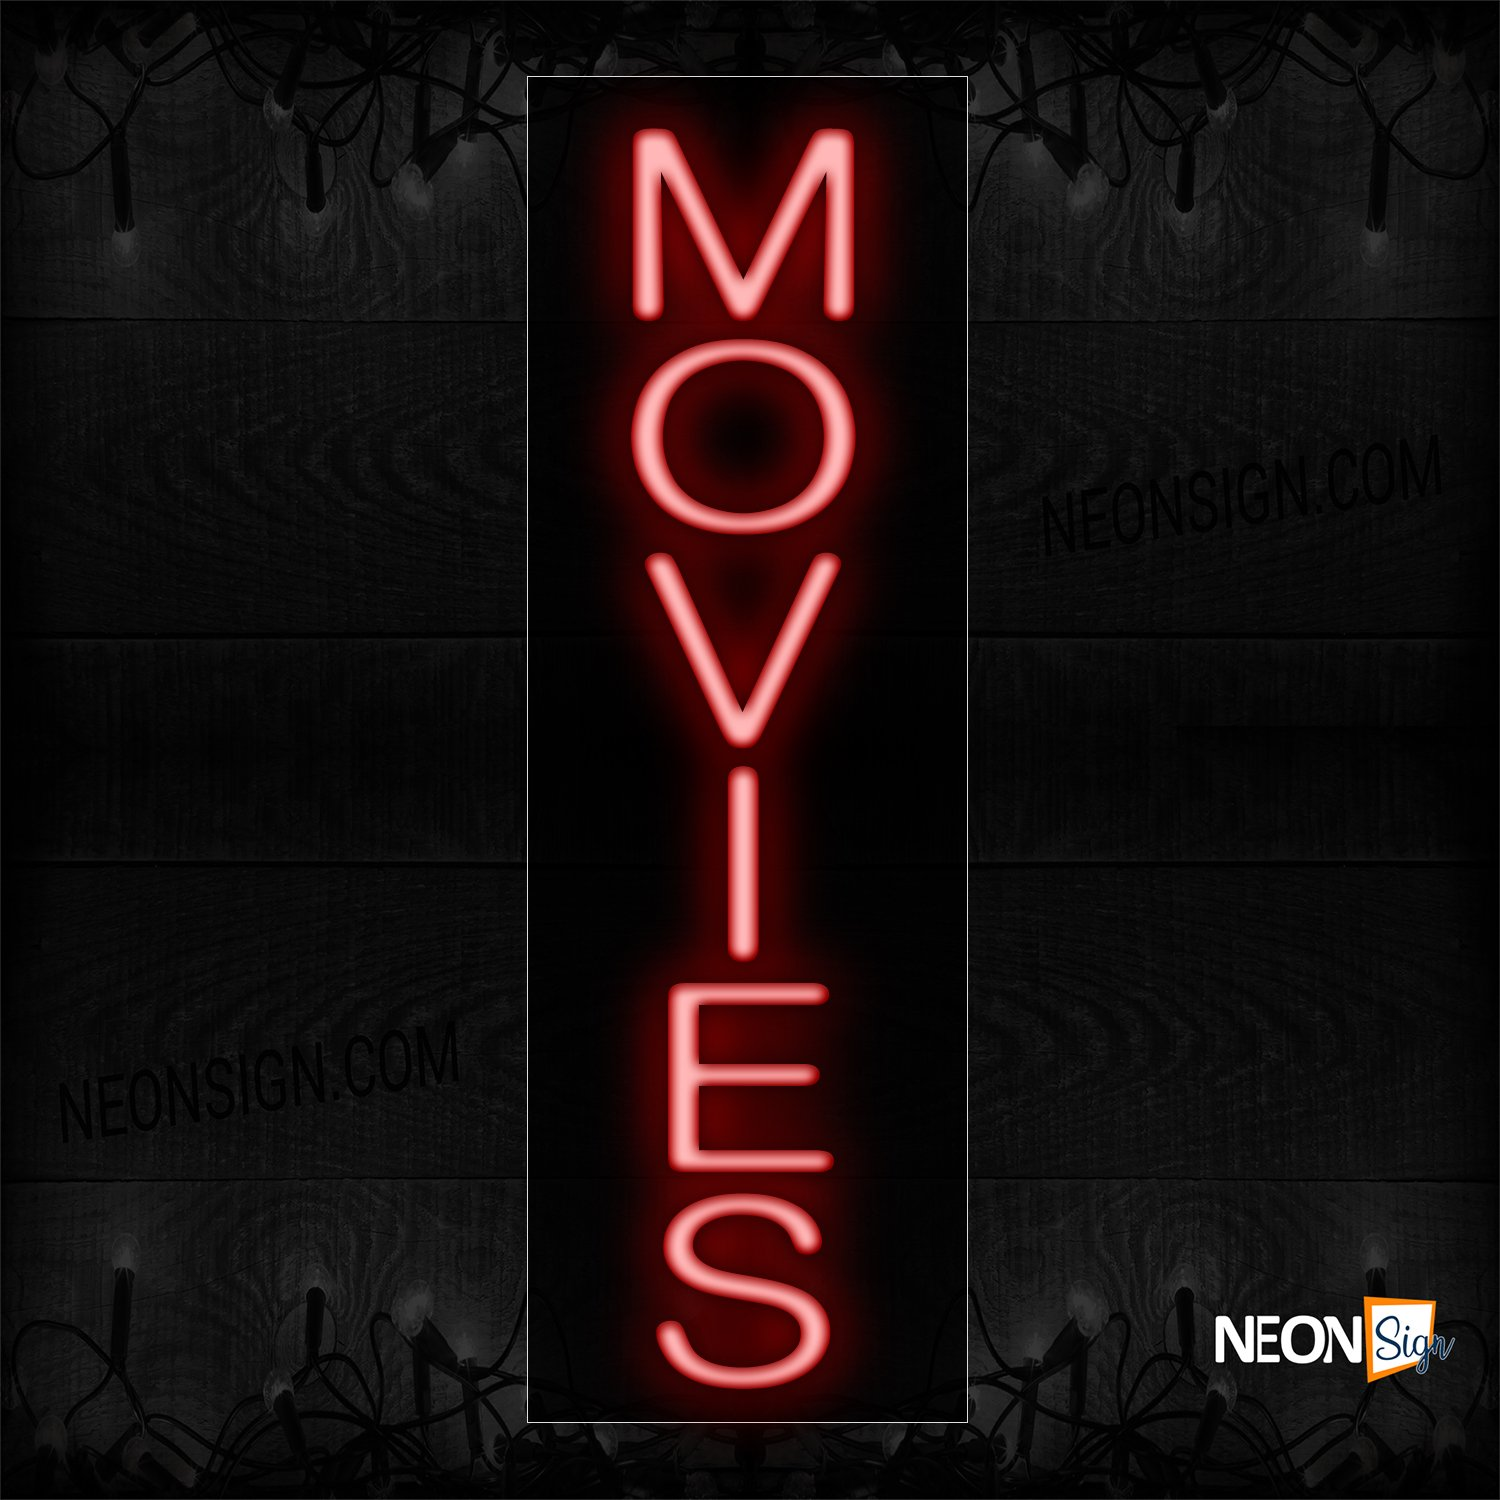 Image of 12264 Movies Neon Sign_8x24 Black Backing